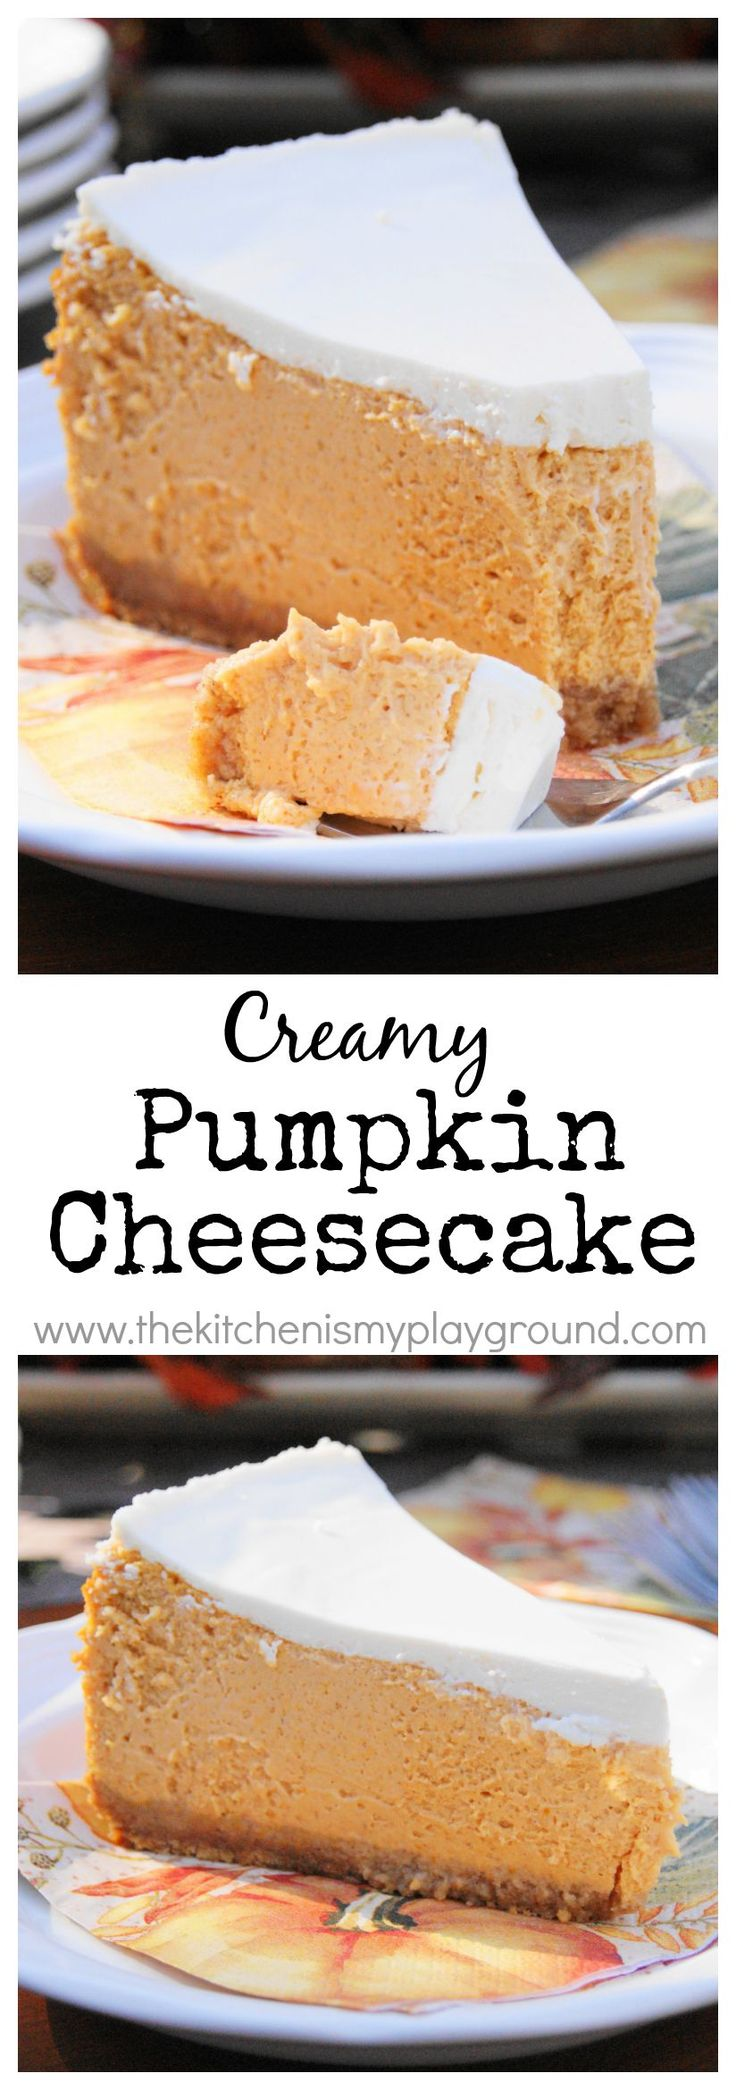 Creamy Pumpkin Cheesecake ~ what a lovely Fall dessert!    www.thekitchenismyplayground.com